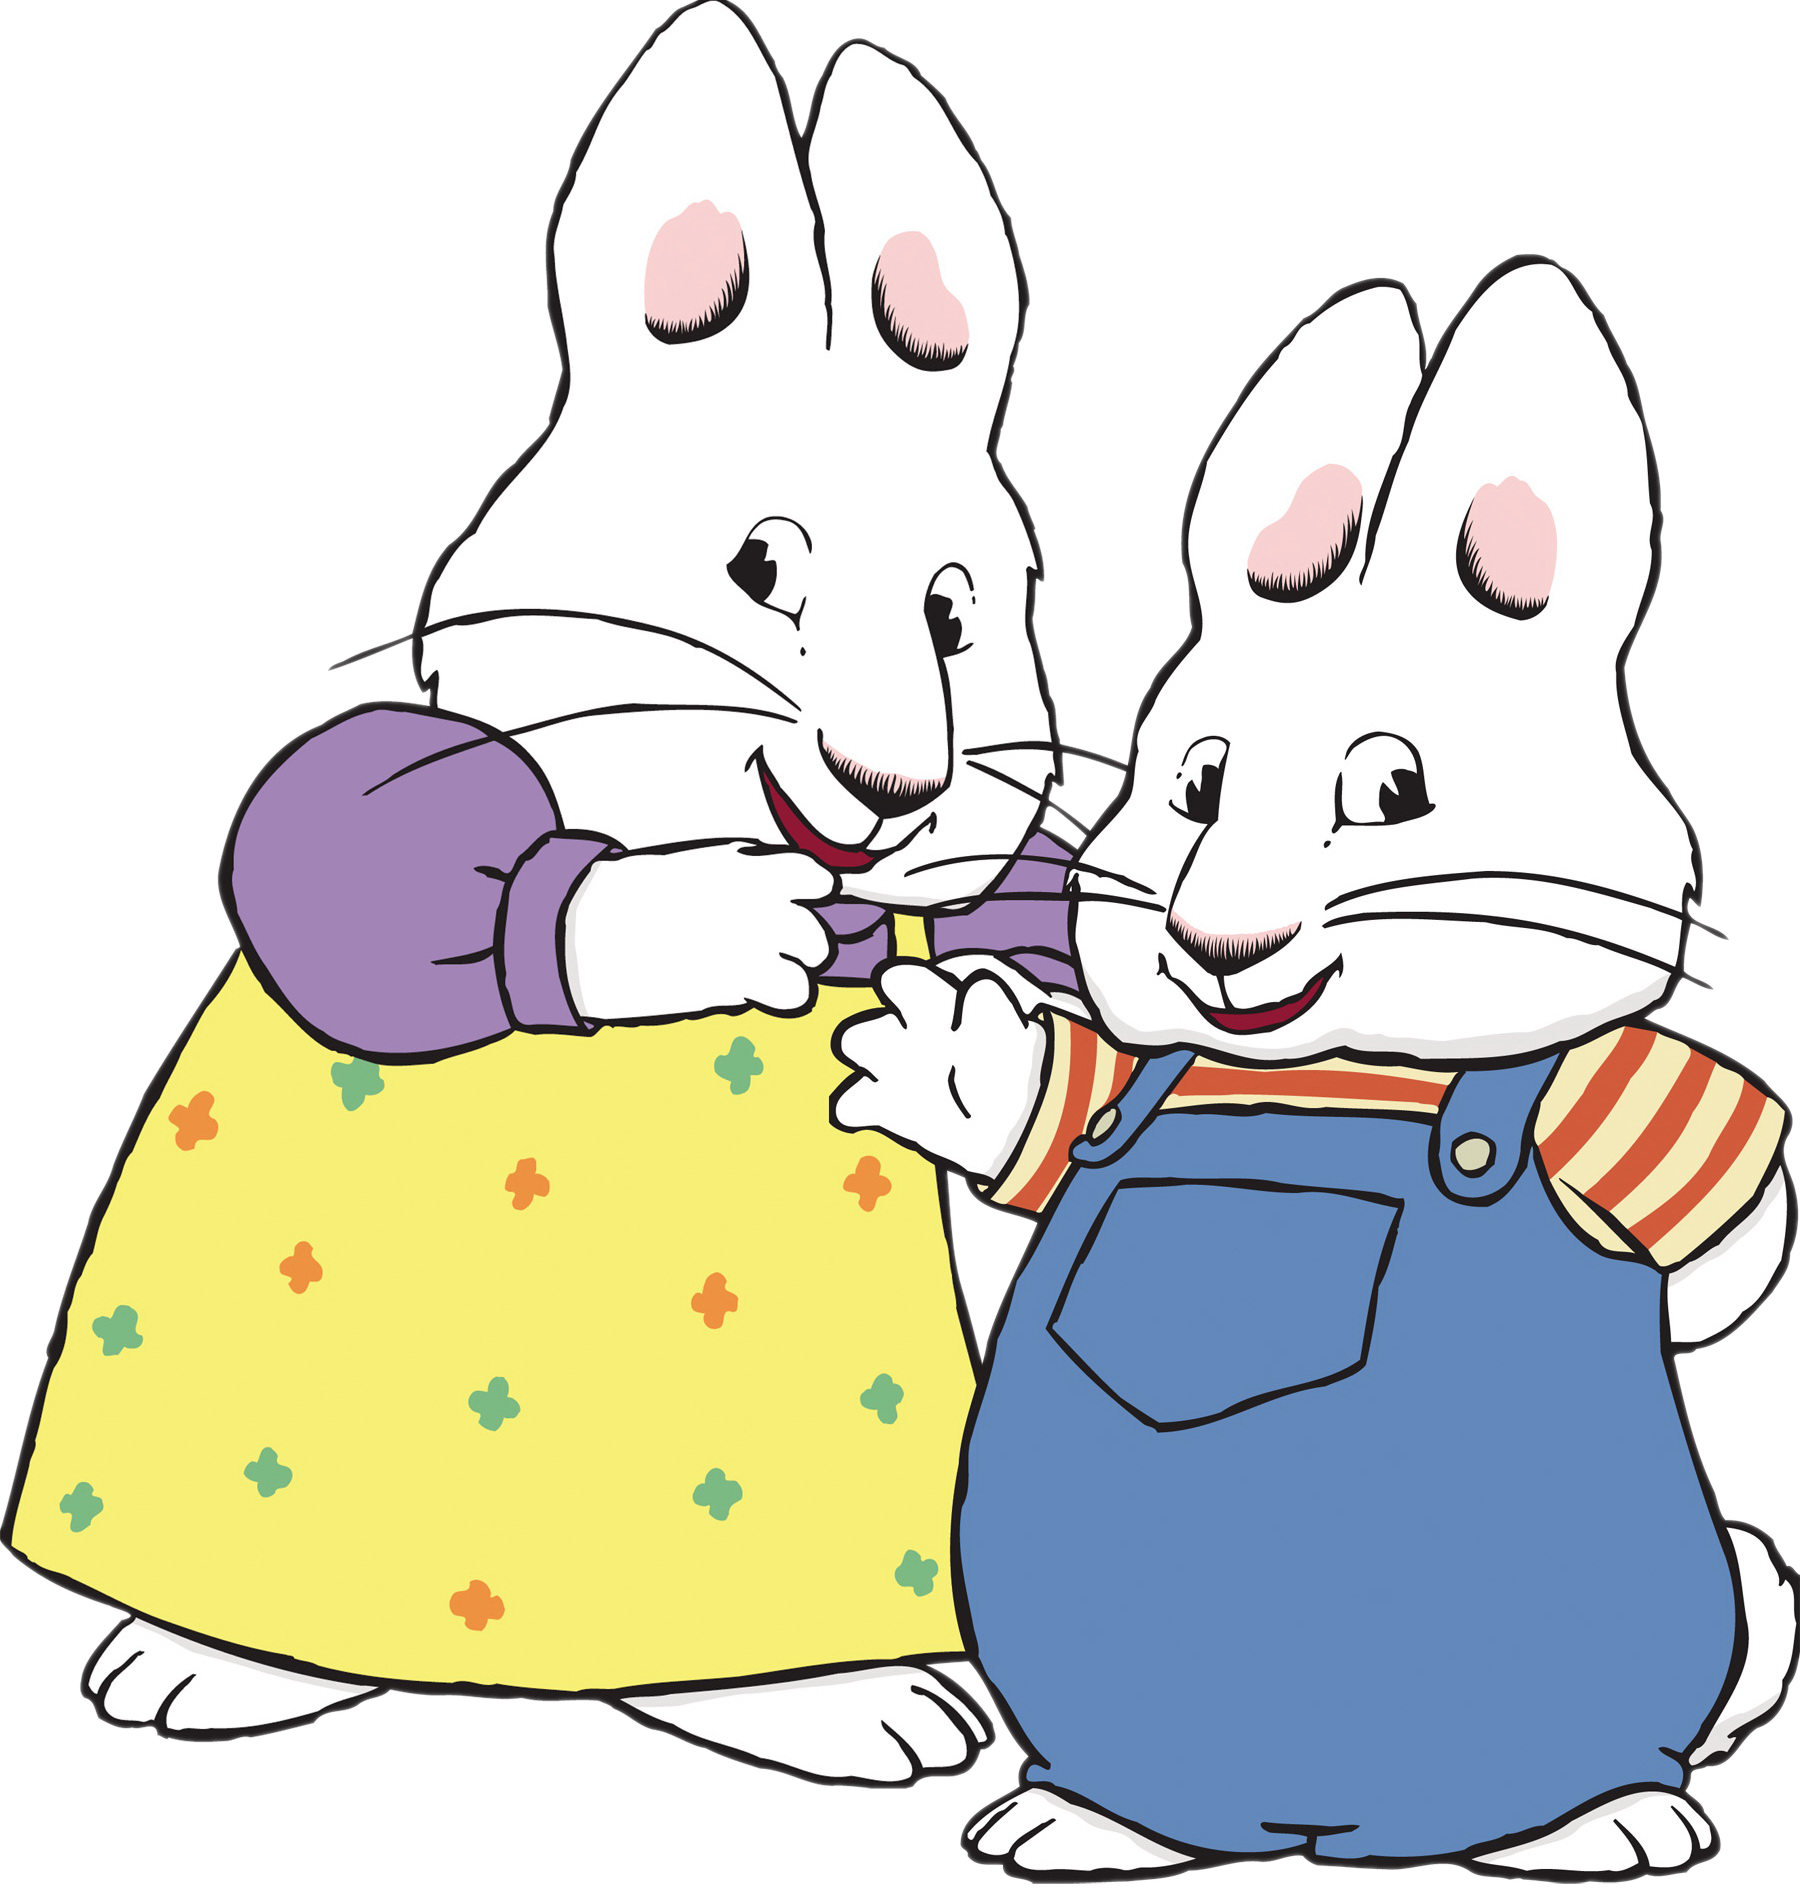 Image ICC MaxRubypng Max Ruby Wiki FANDOM powered by Wikia